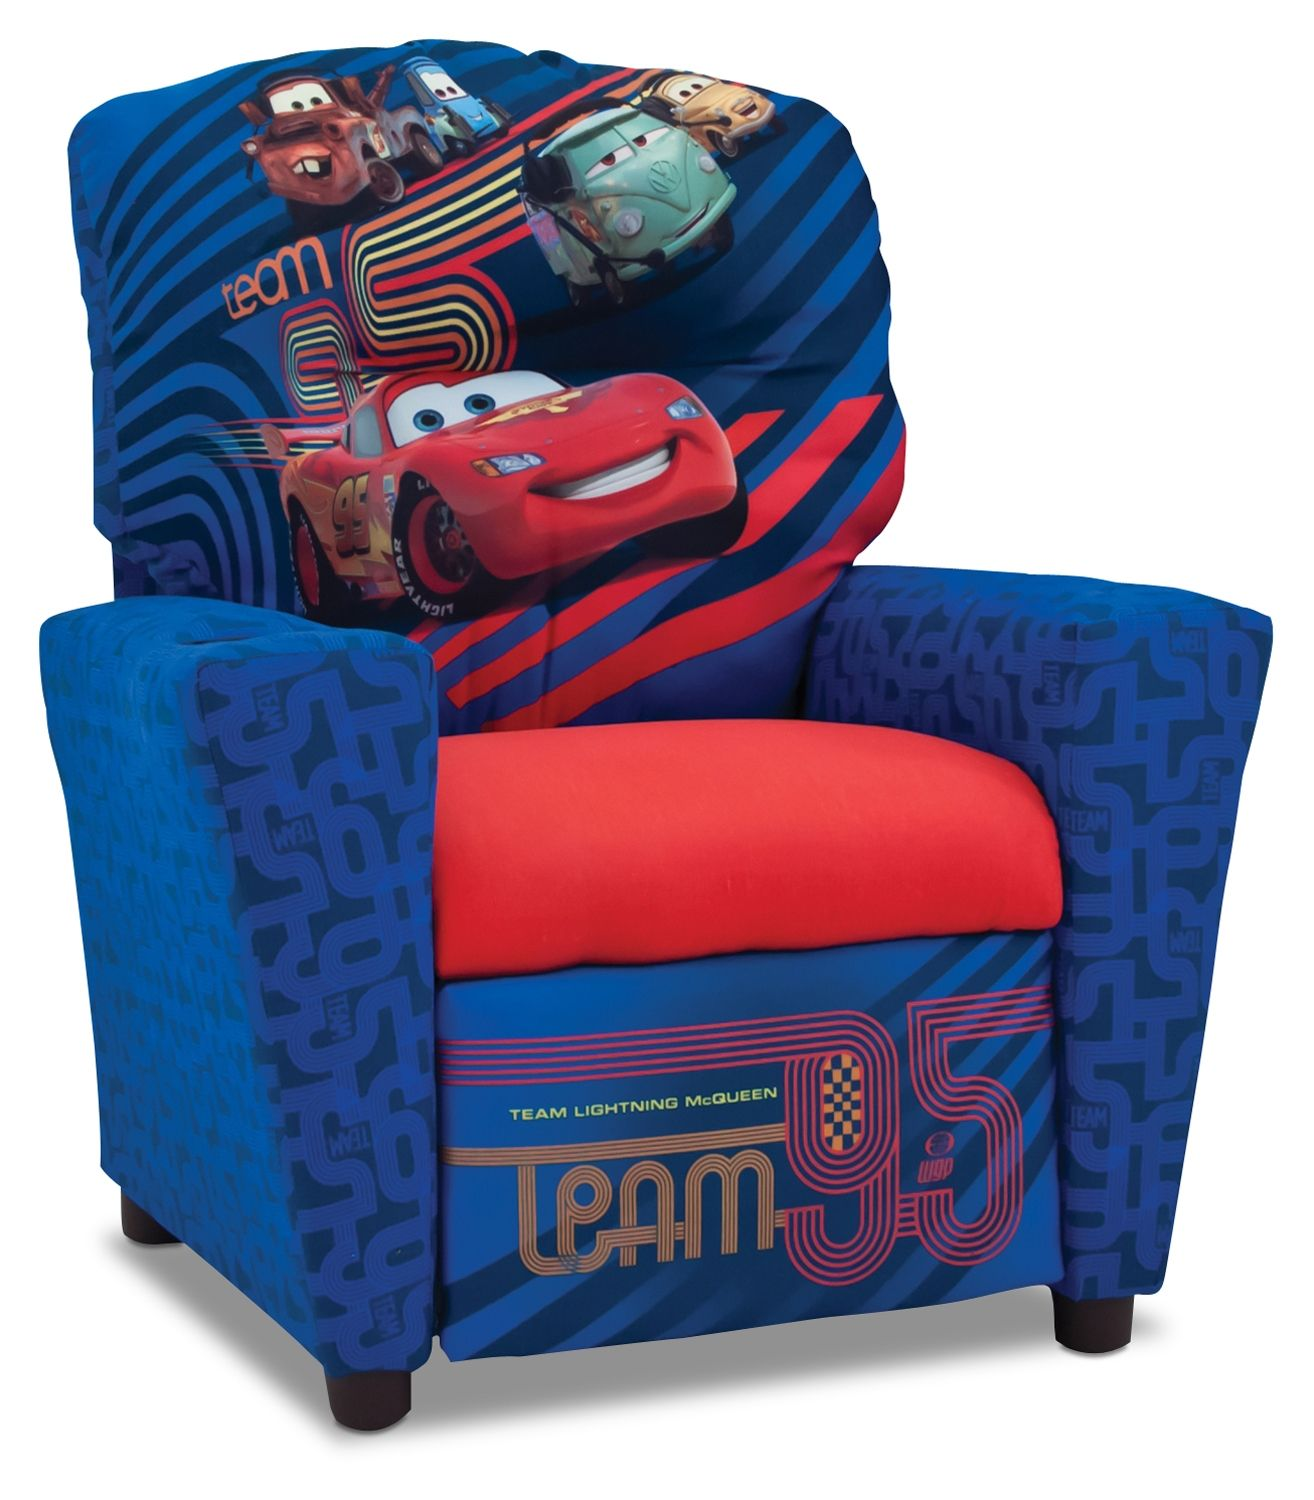 Outstanding Parade Motion Kids Recliner Leons Leons Furniture Alphanode Cool Chair Designs And Ideas Alphanodeonline